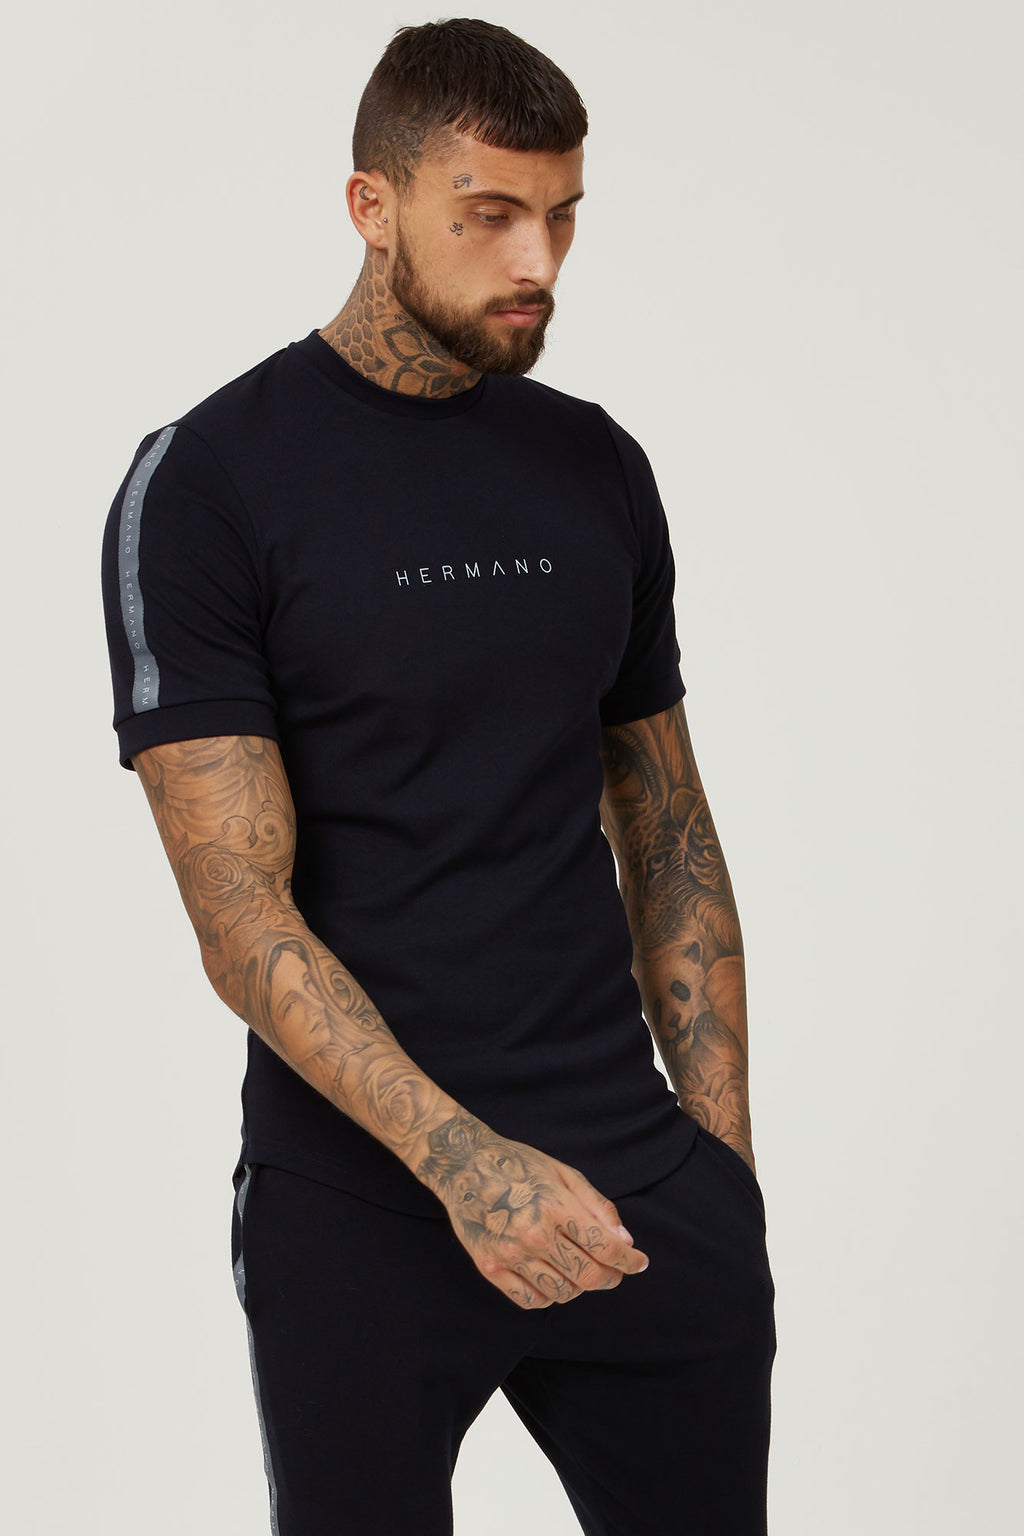 BLACK TAPE SLIM FIT TSHIRT - H E R M A N O